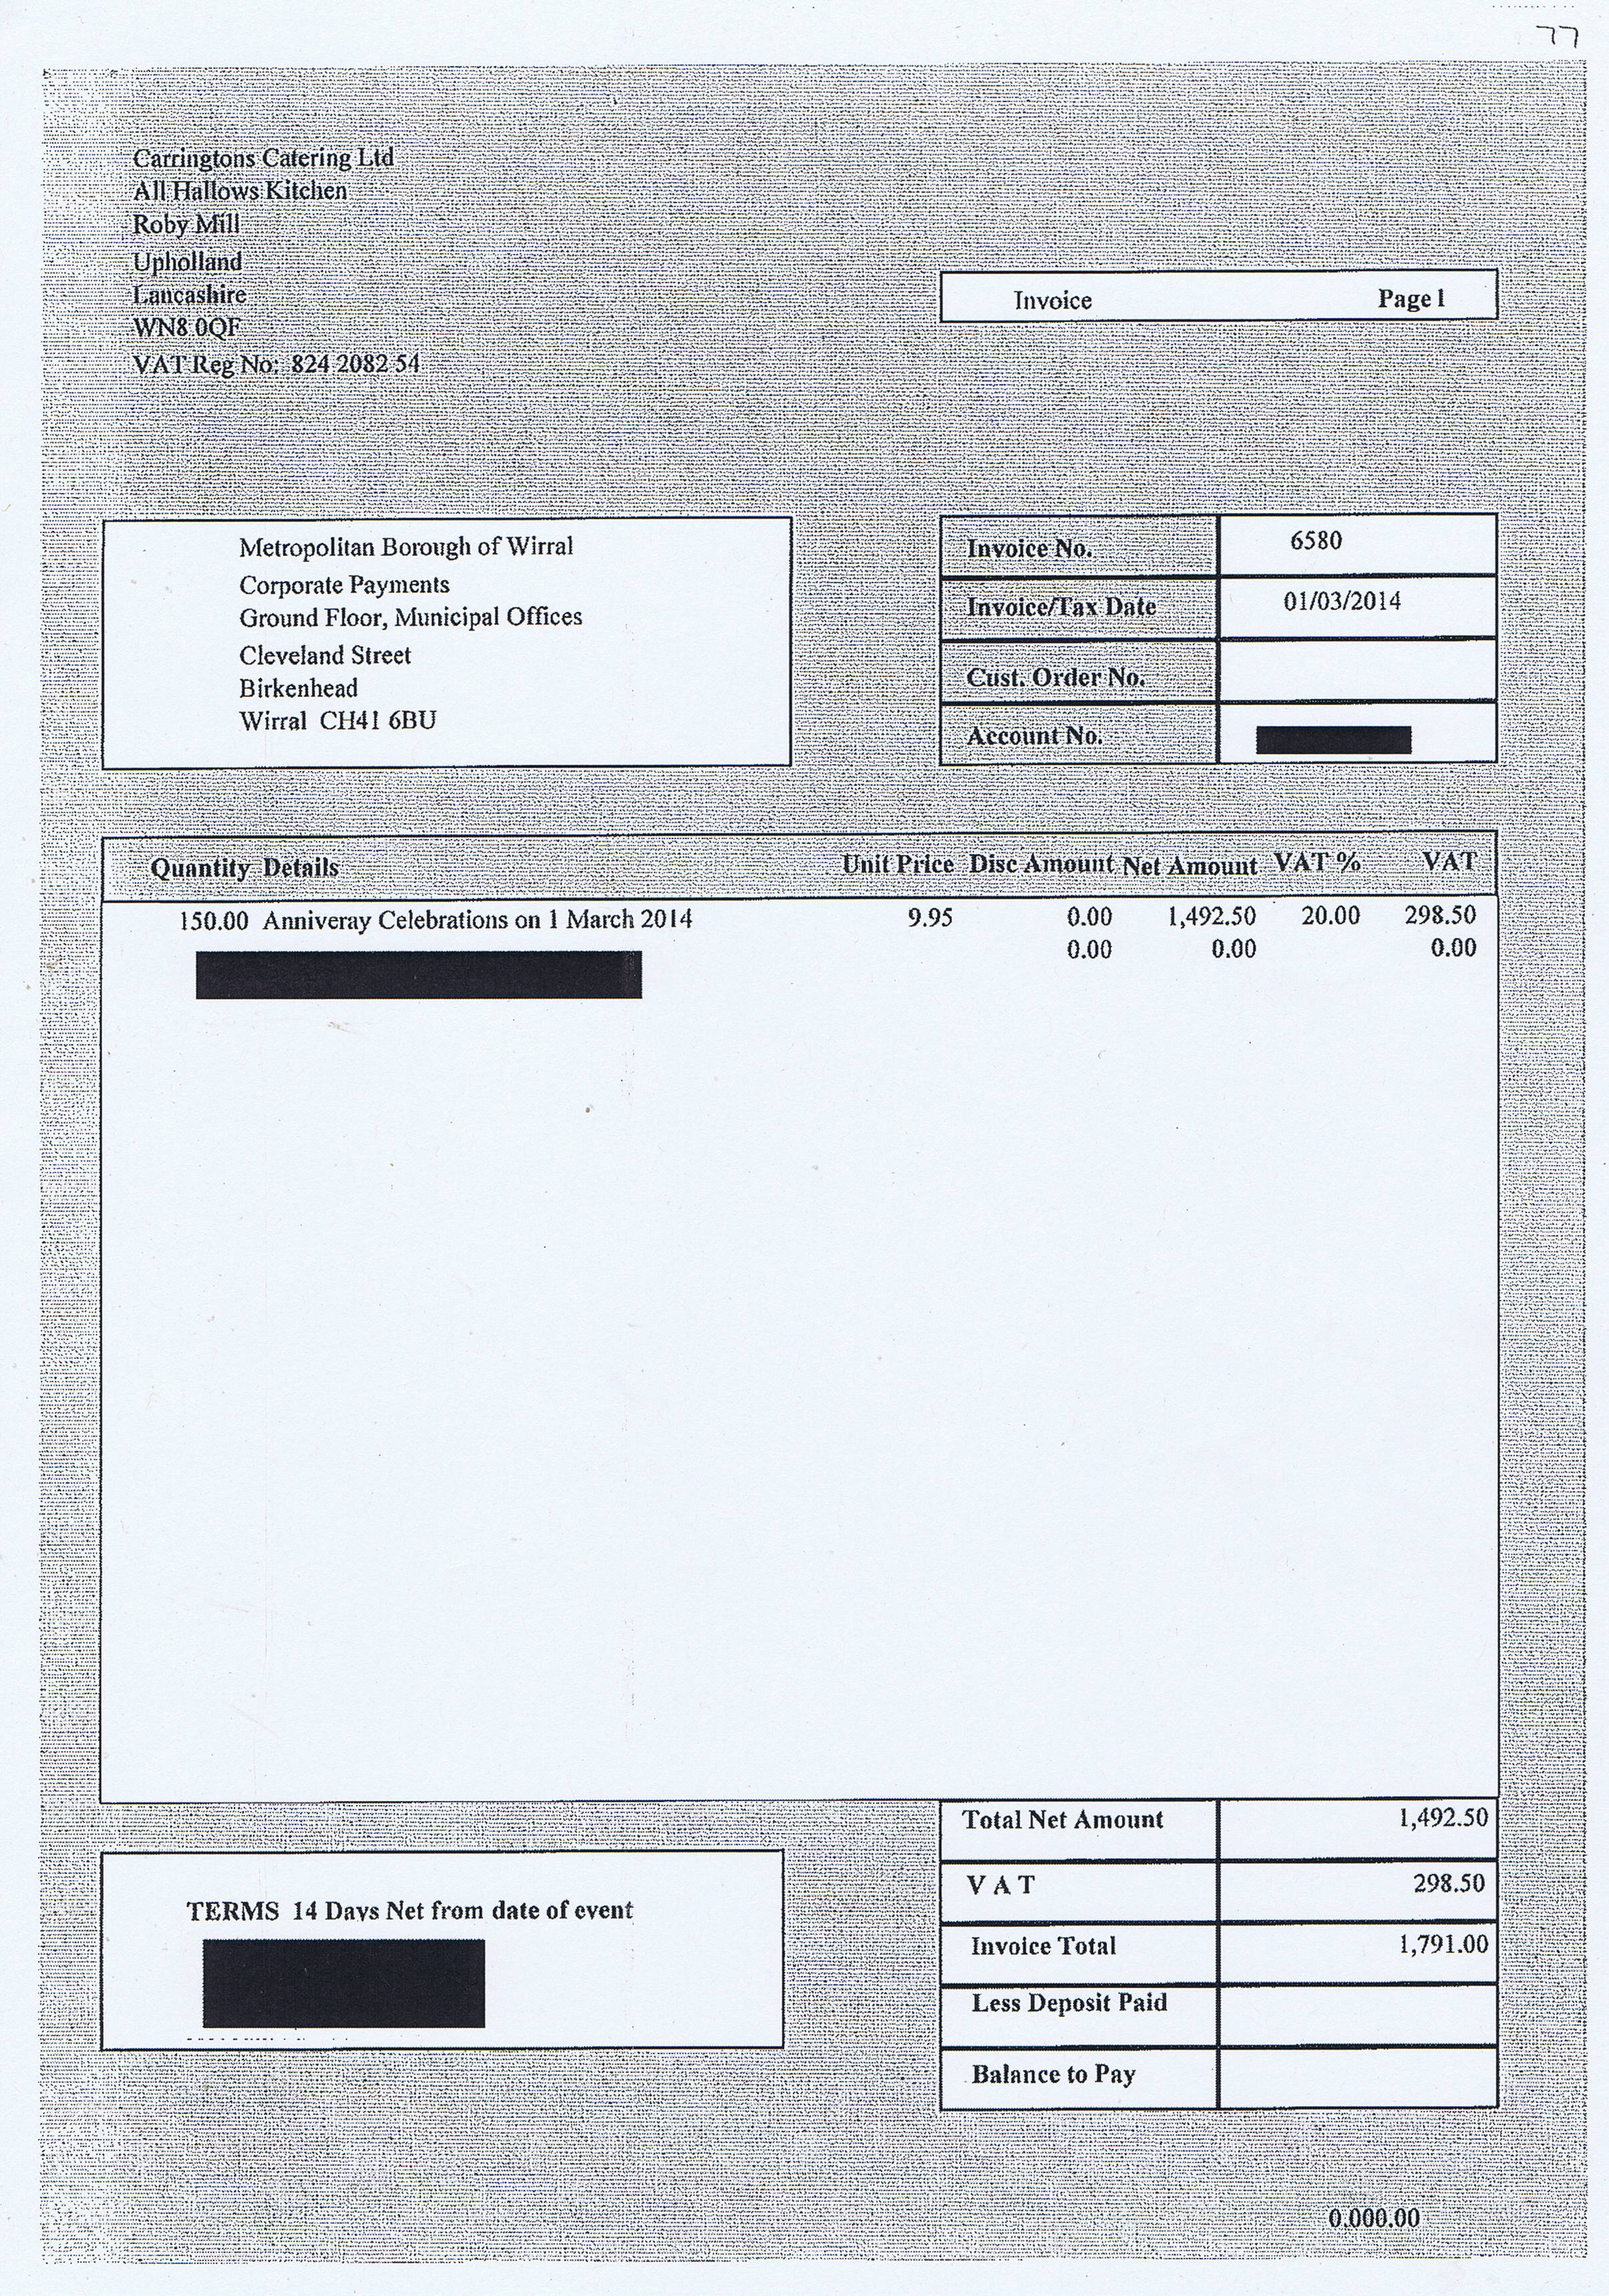 Wirral Council invoice 77 Carringtons Catering Ltd £1791